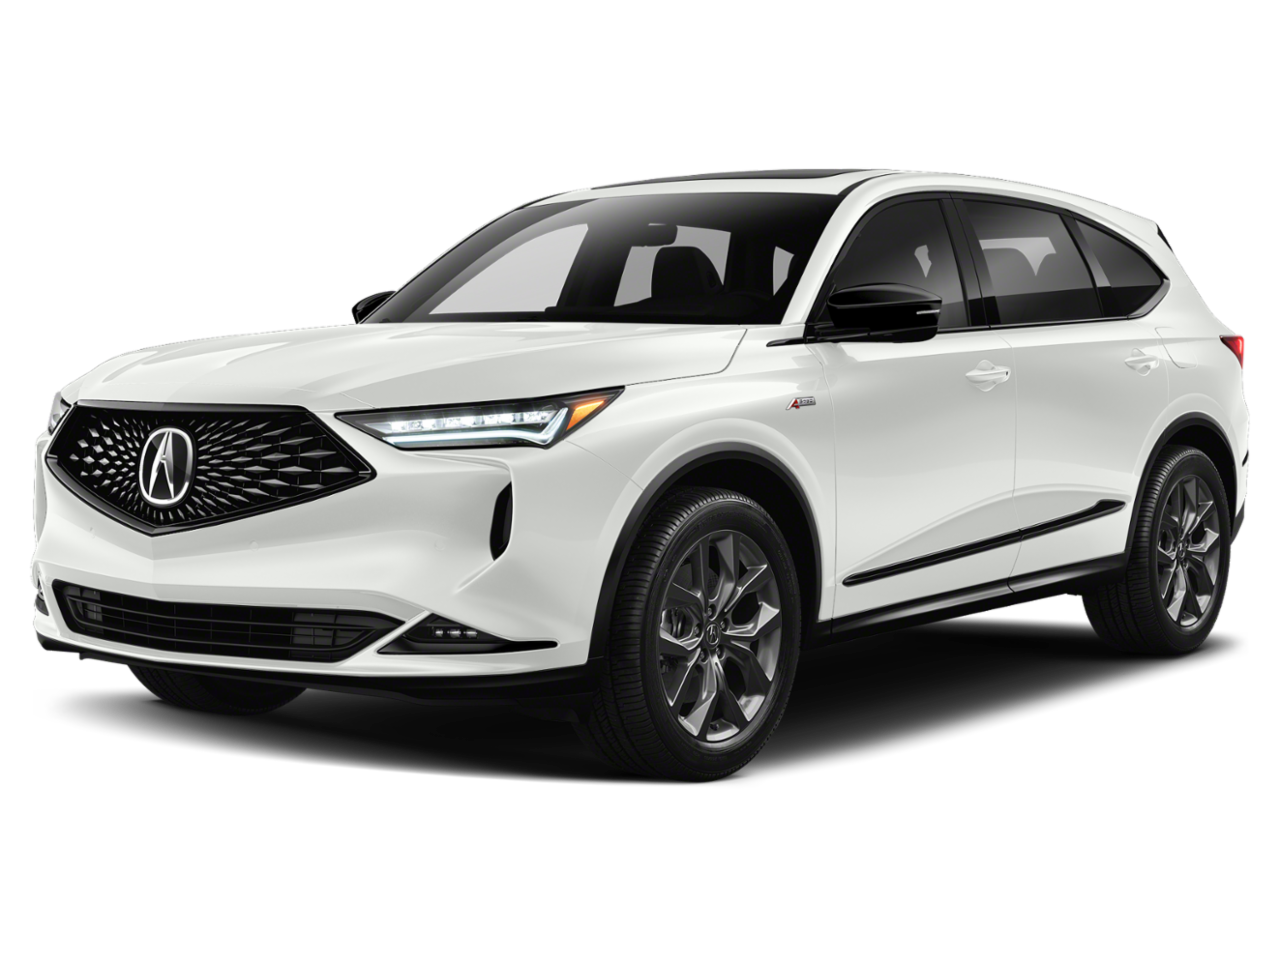 Acura 2022 MDX w/A-Spec Package